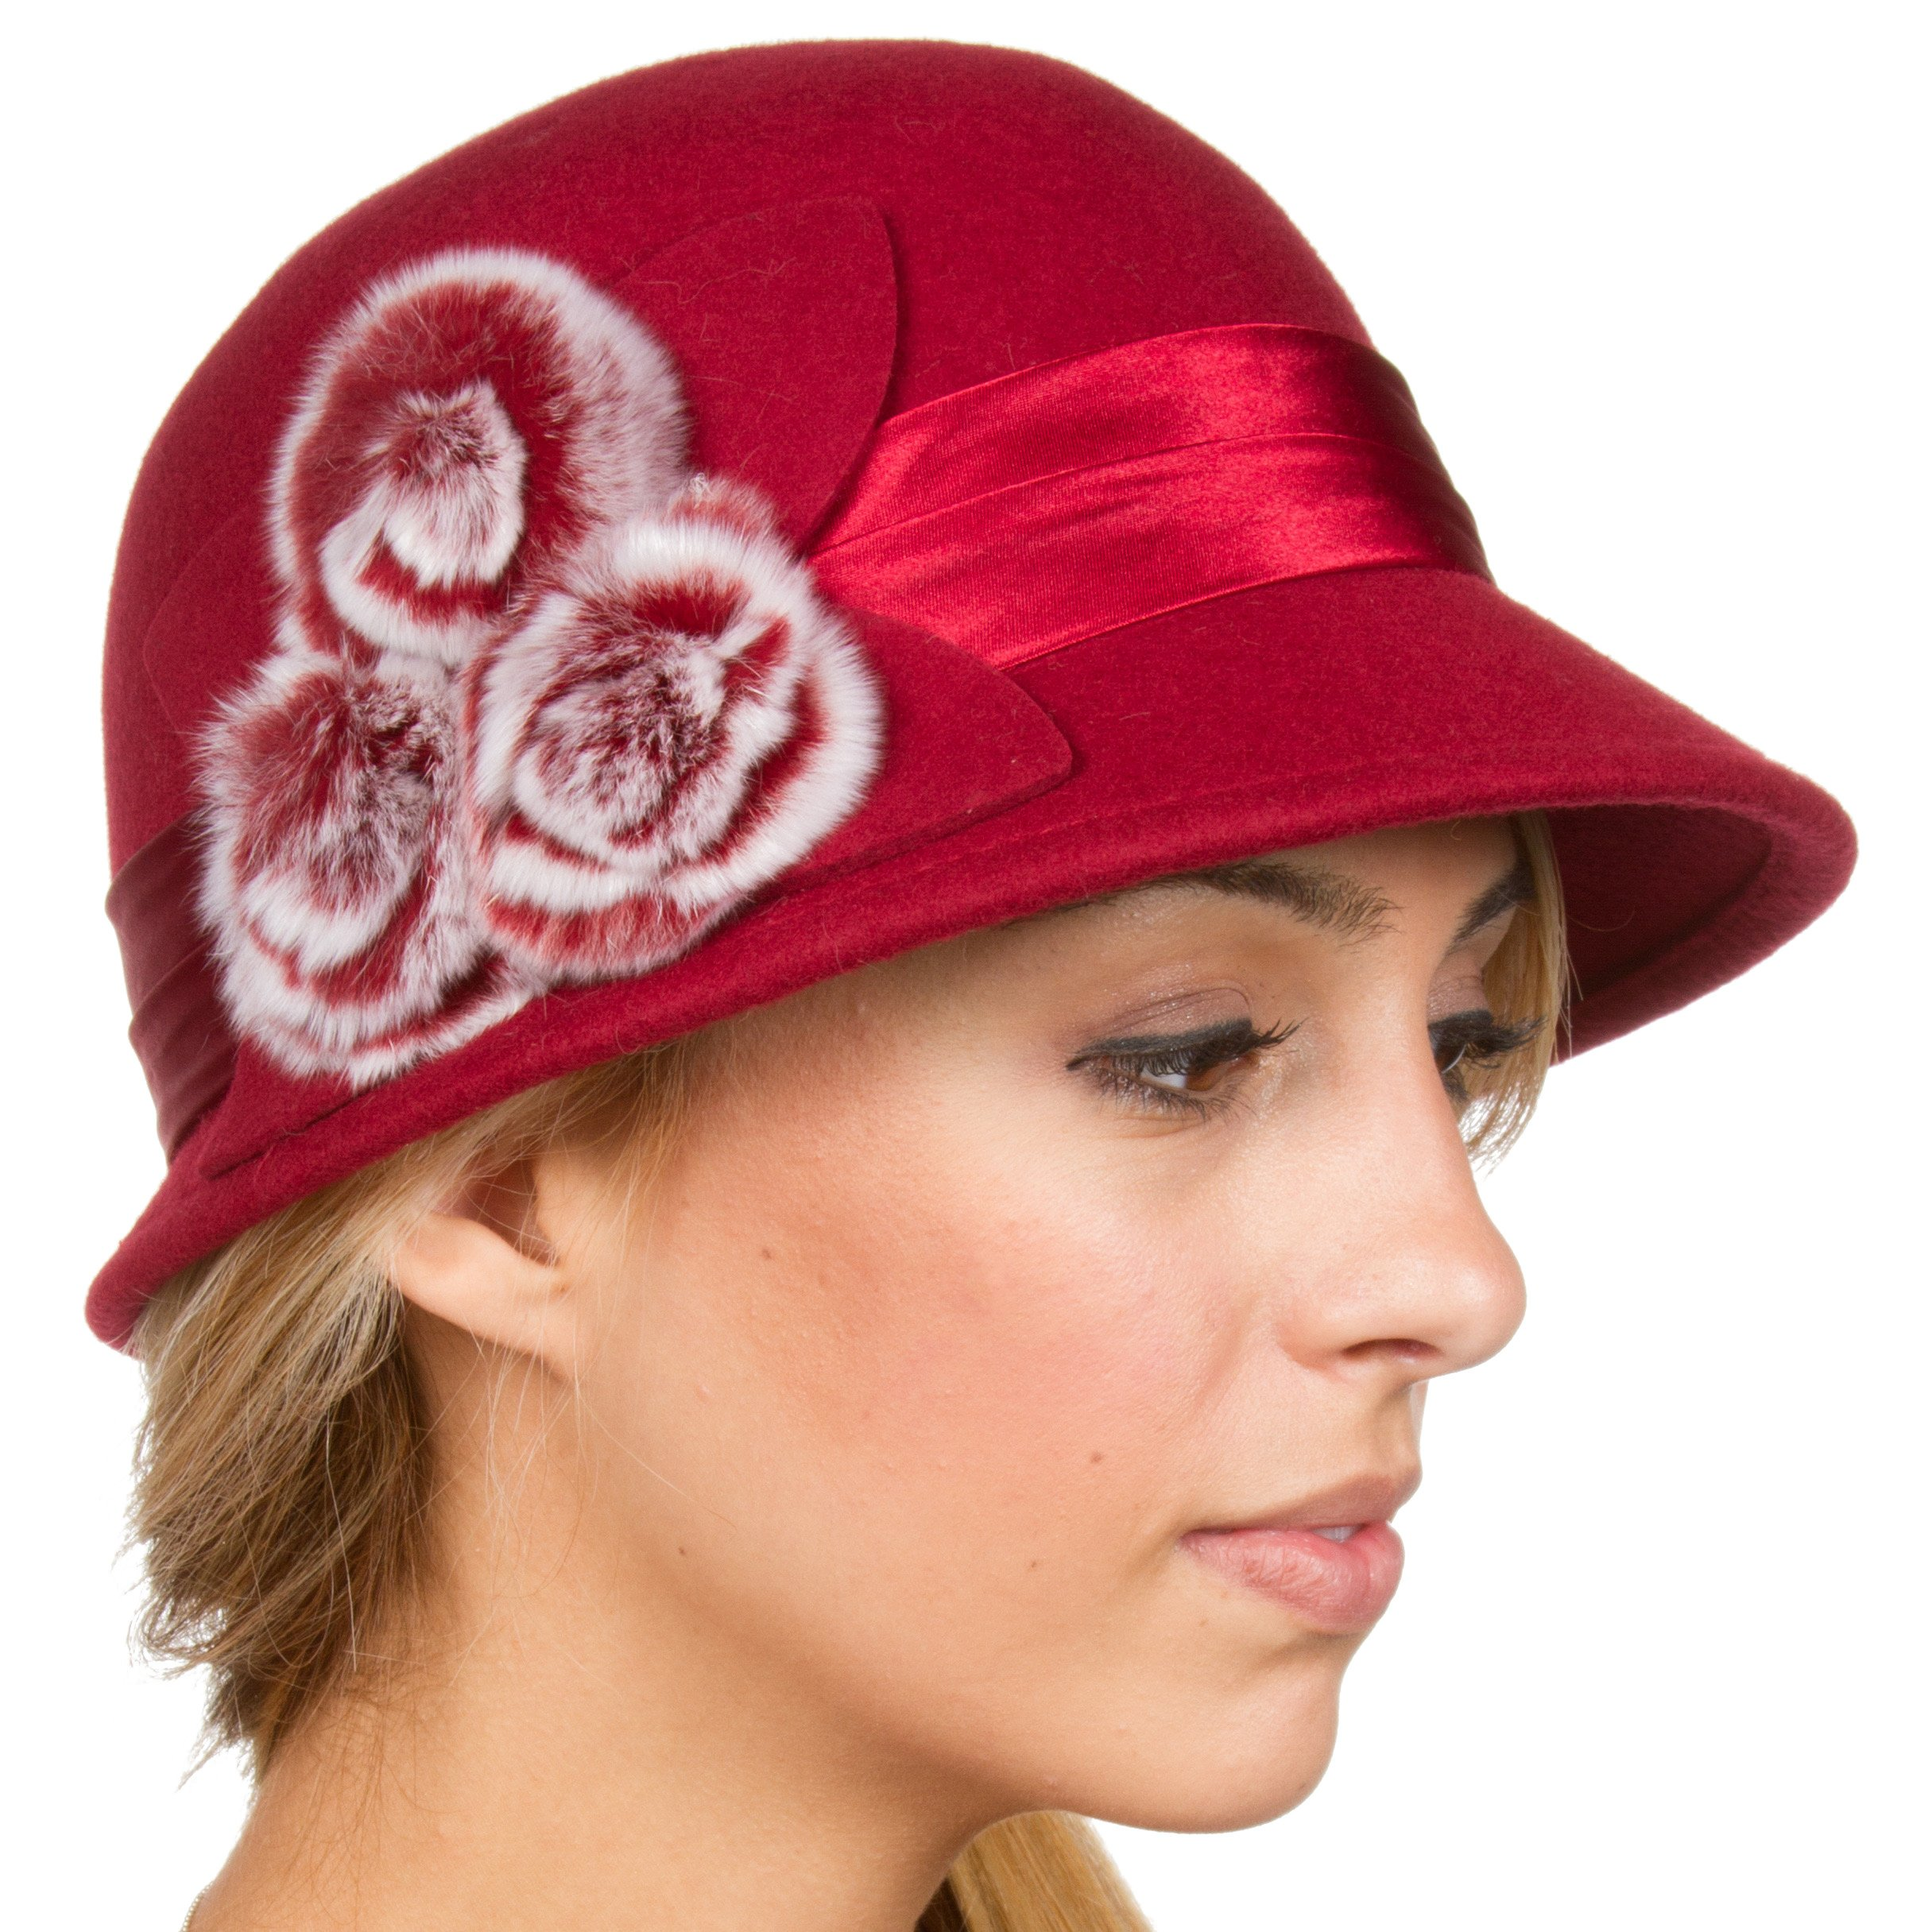 Sakkas 7841LC Sadie Faux Fur Vintage Style Wool Cloche Bucket Bell Hat - Red - One Size